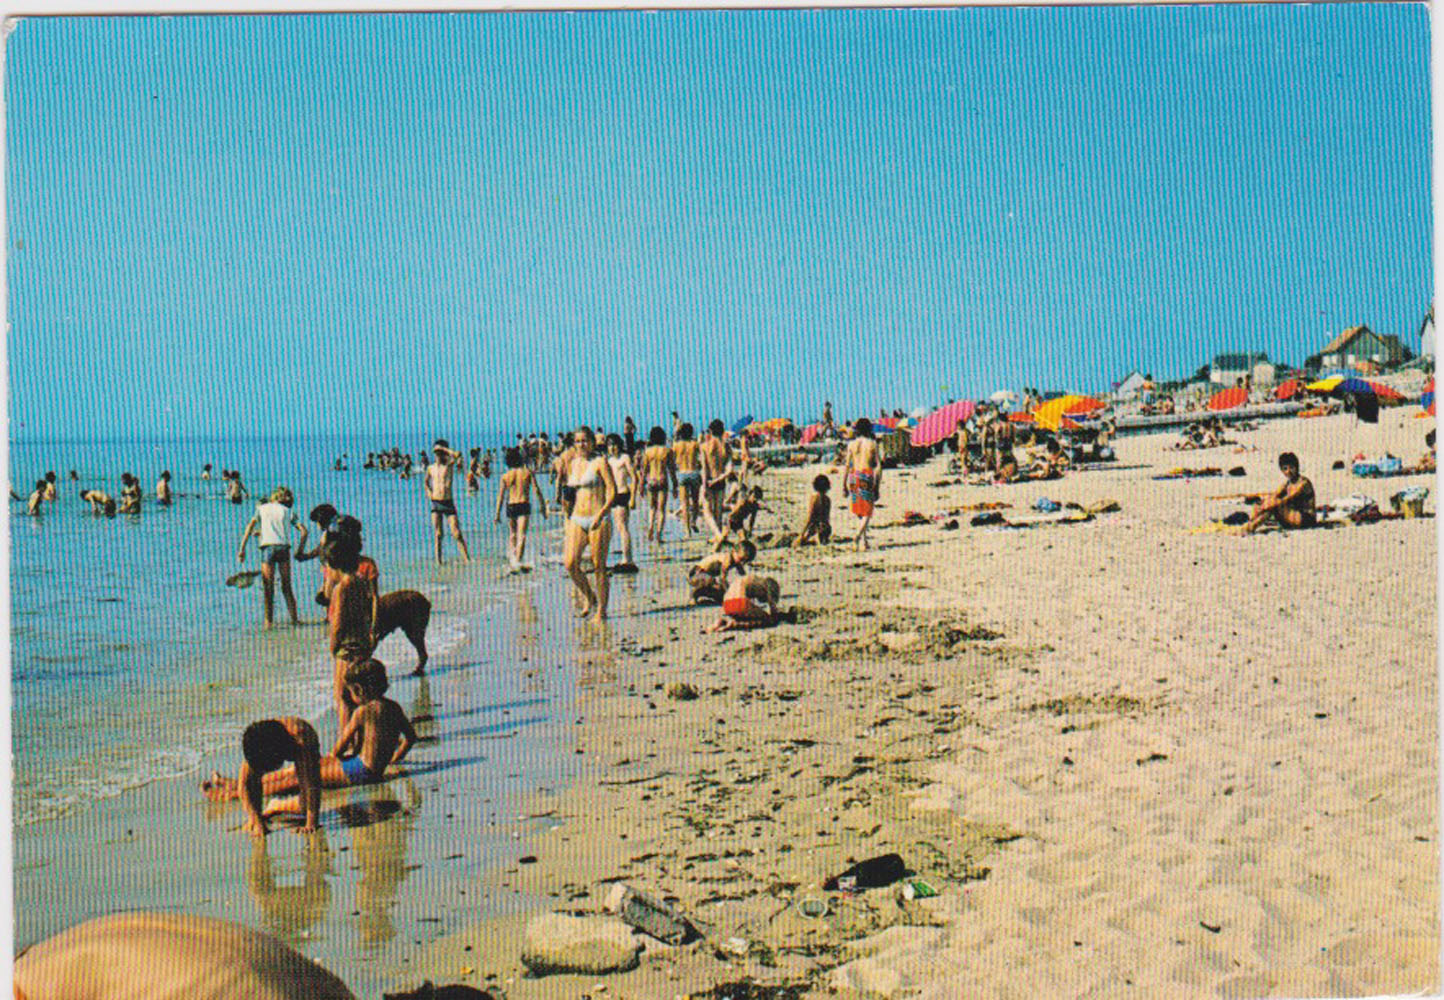 1974 St Martin Plage 4 © collection Jean Claude Ferret